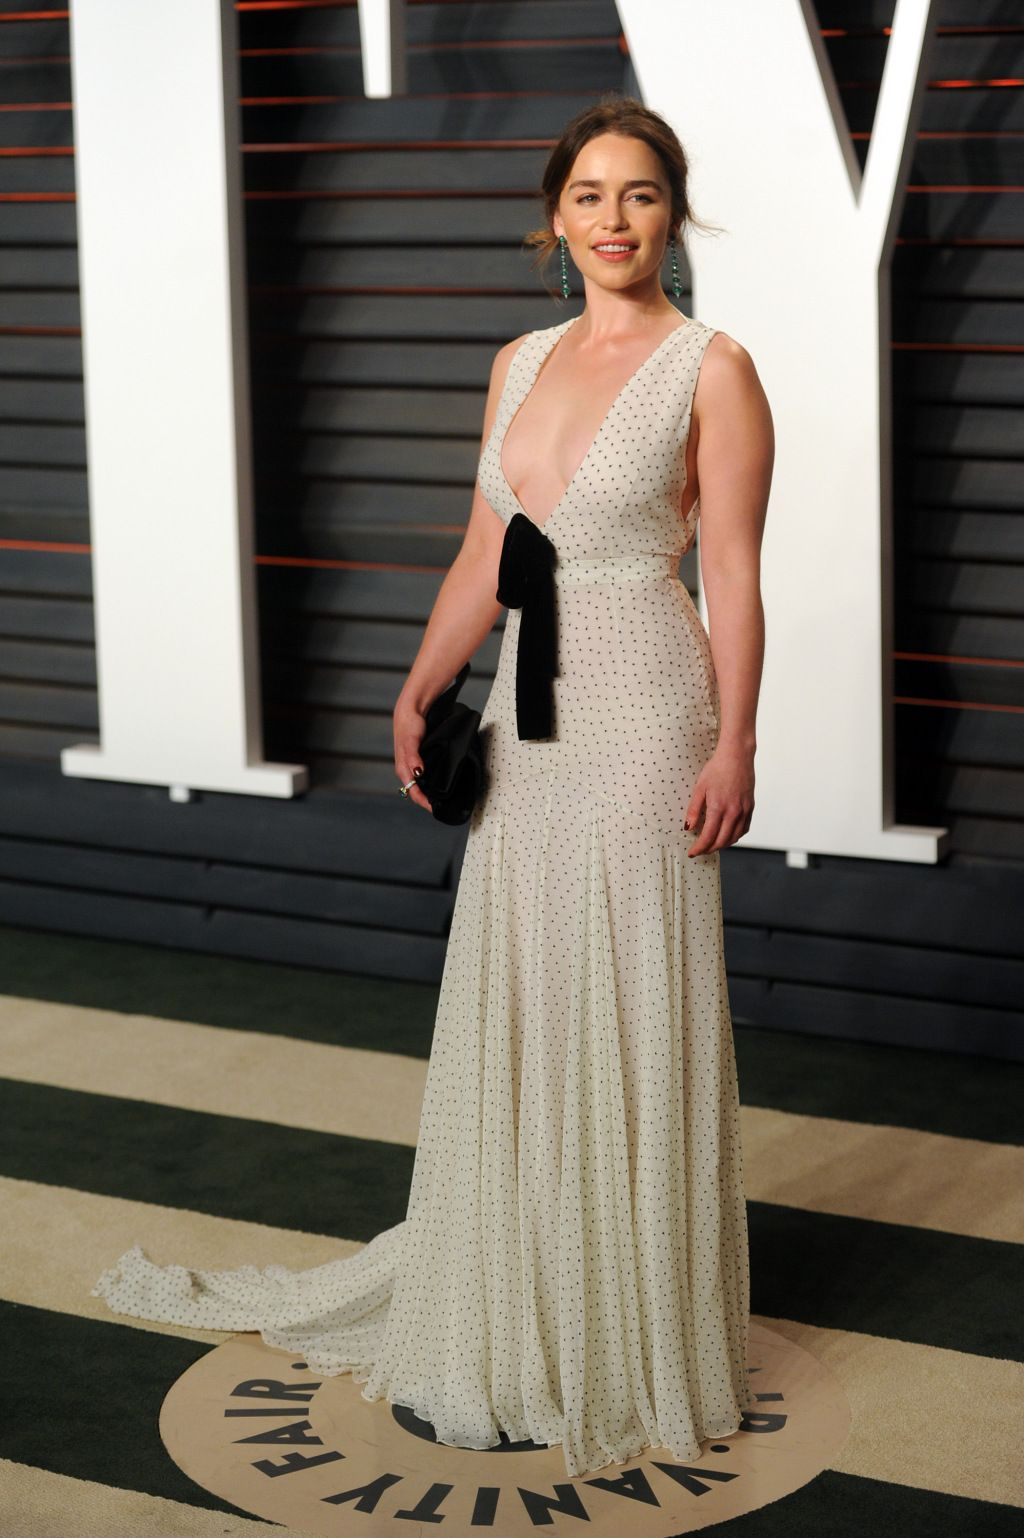 Roter Teppich Pinterest Inside The Oscars 2016 Vanity Fair After Party Emilia